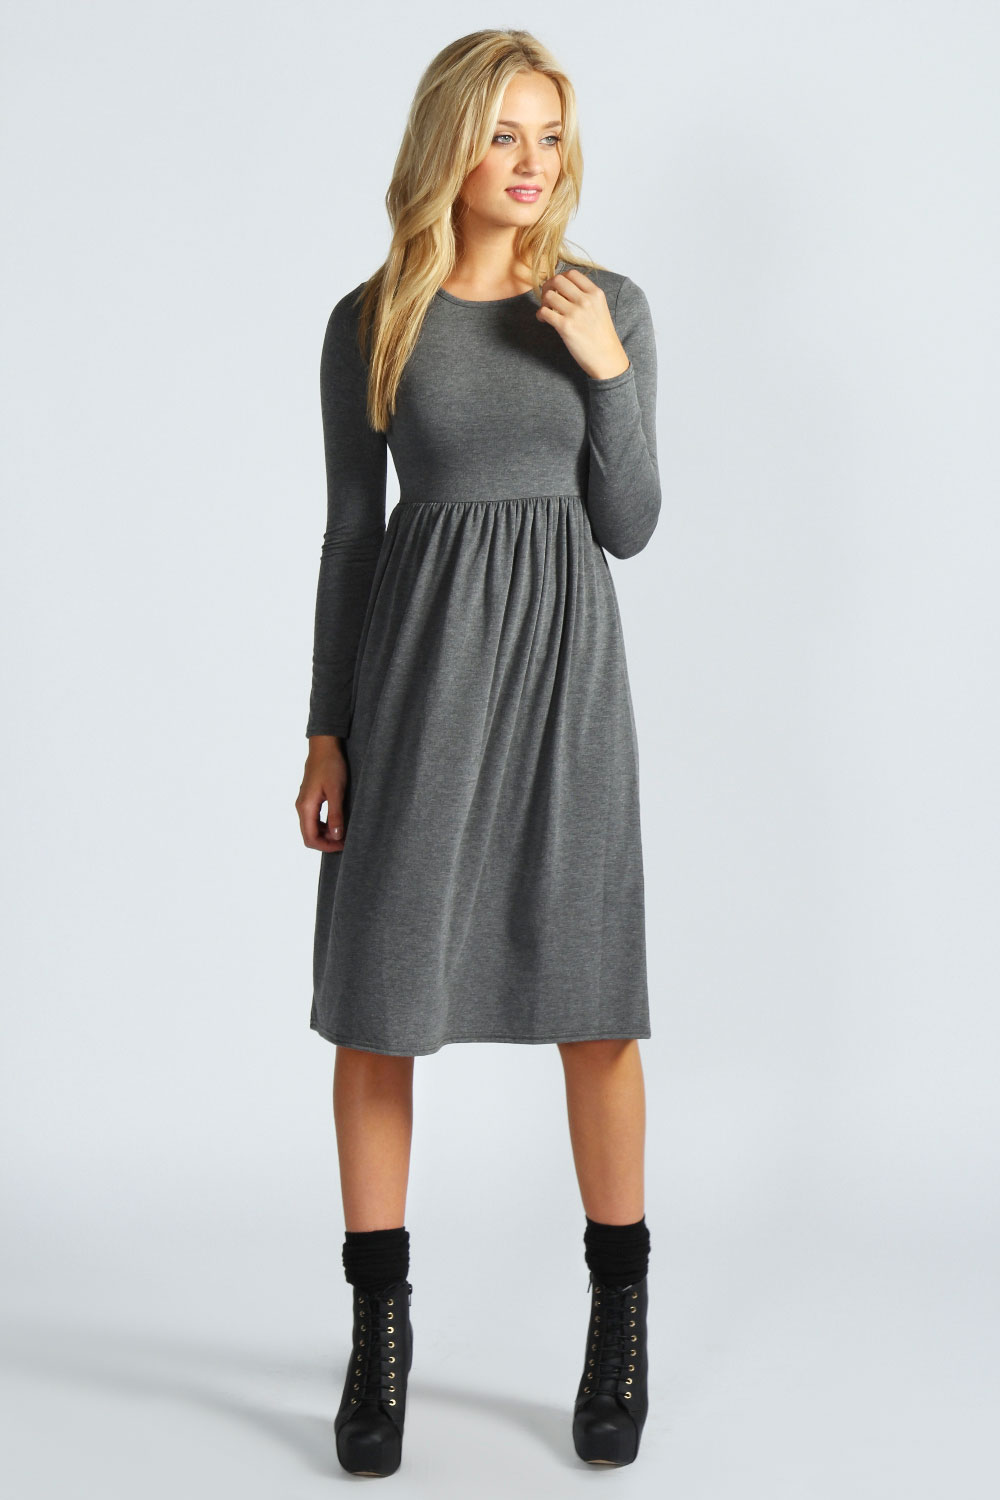 Long sleeve womens dresses